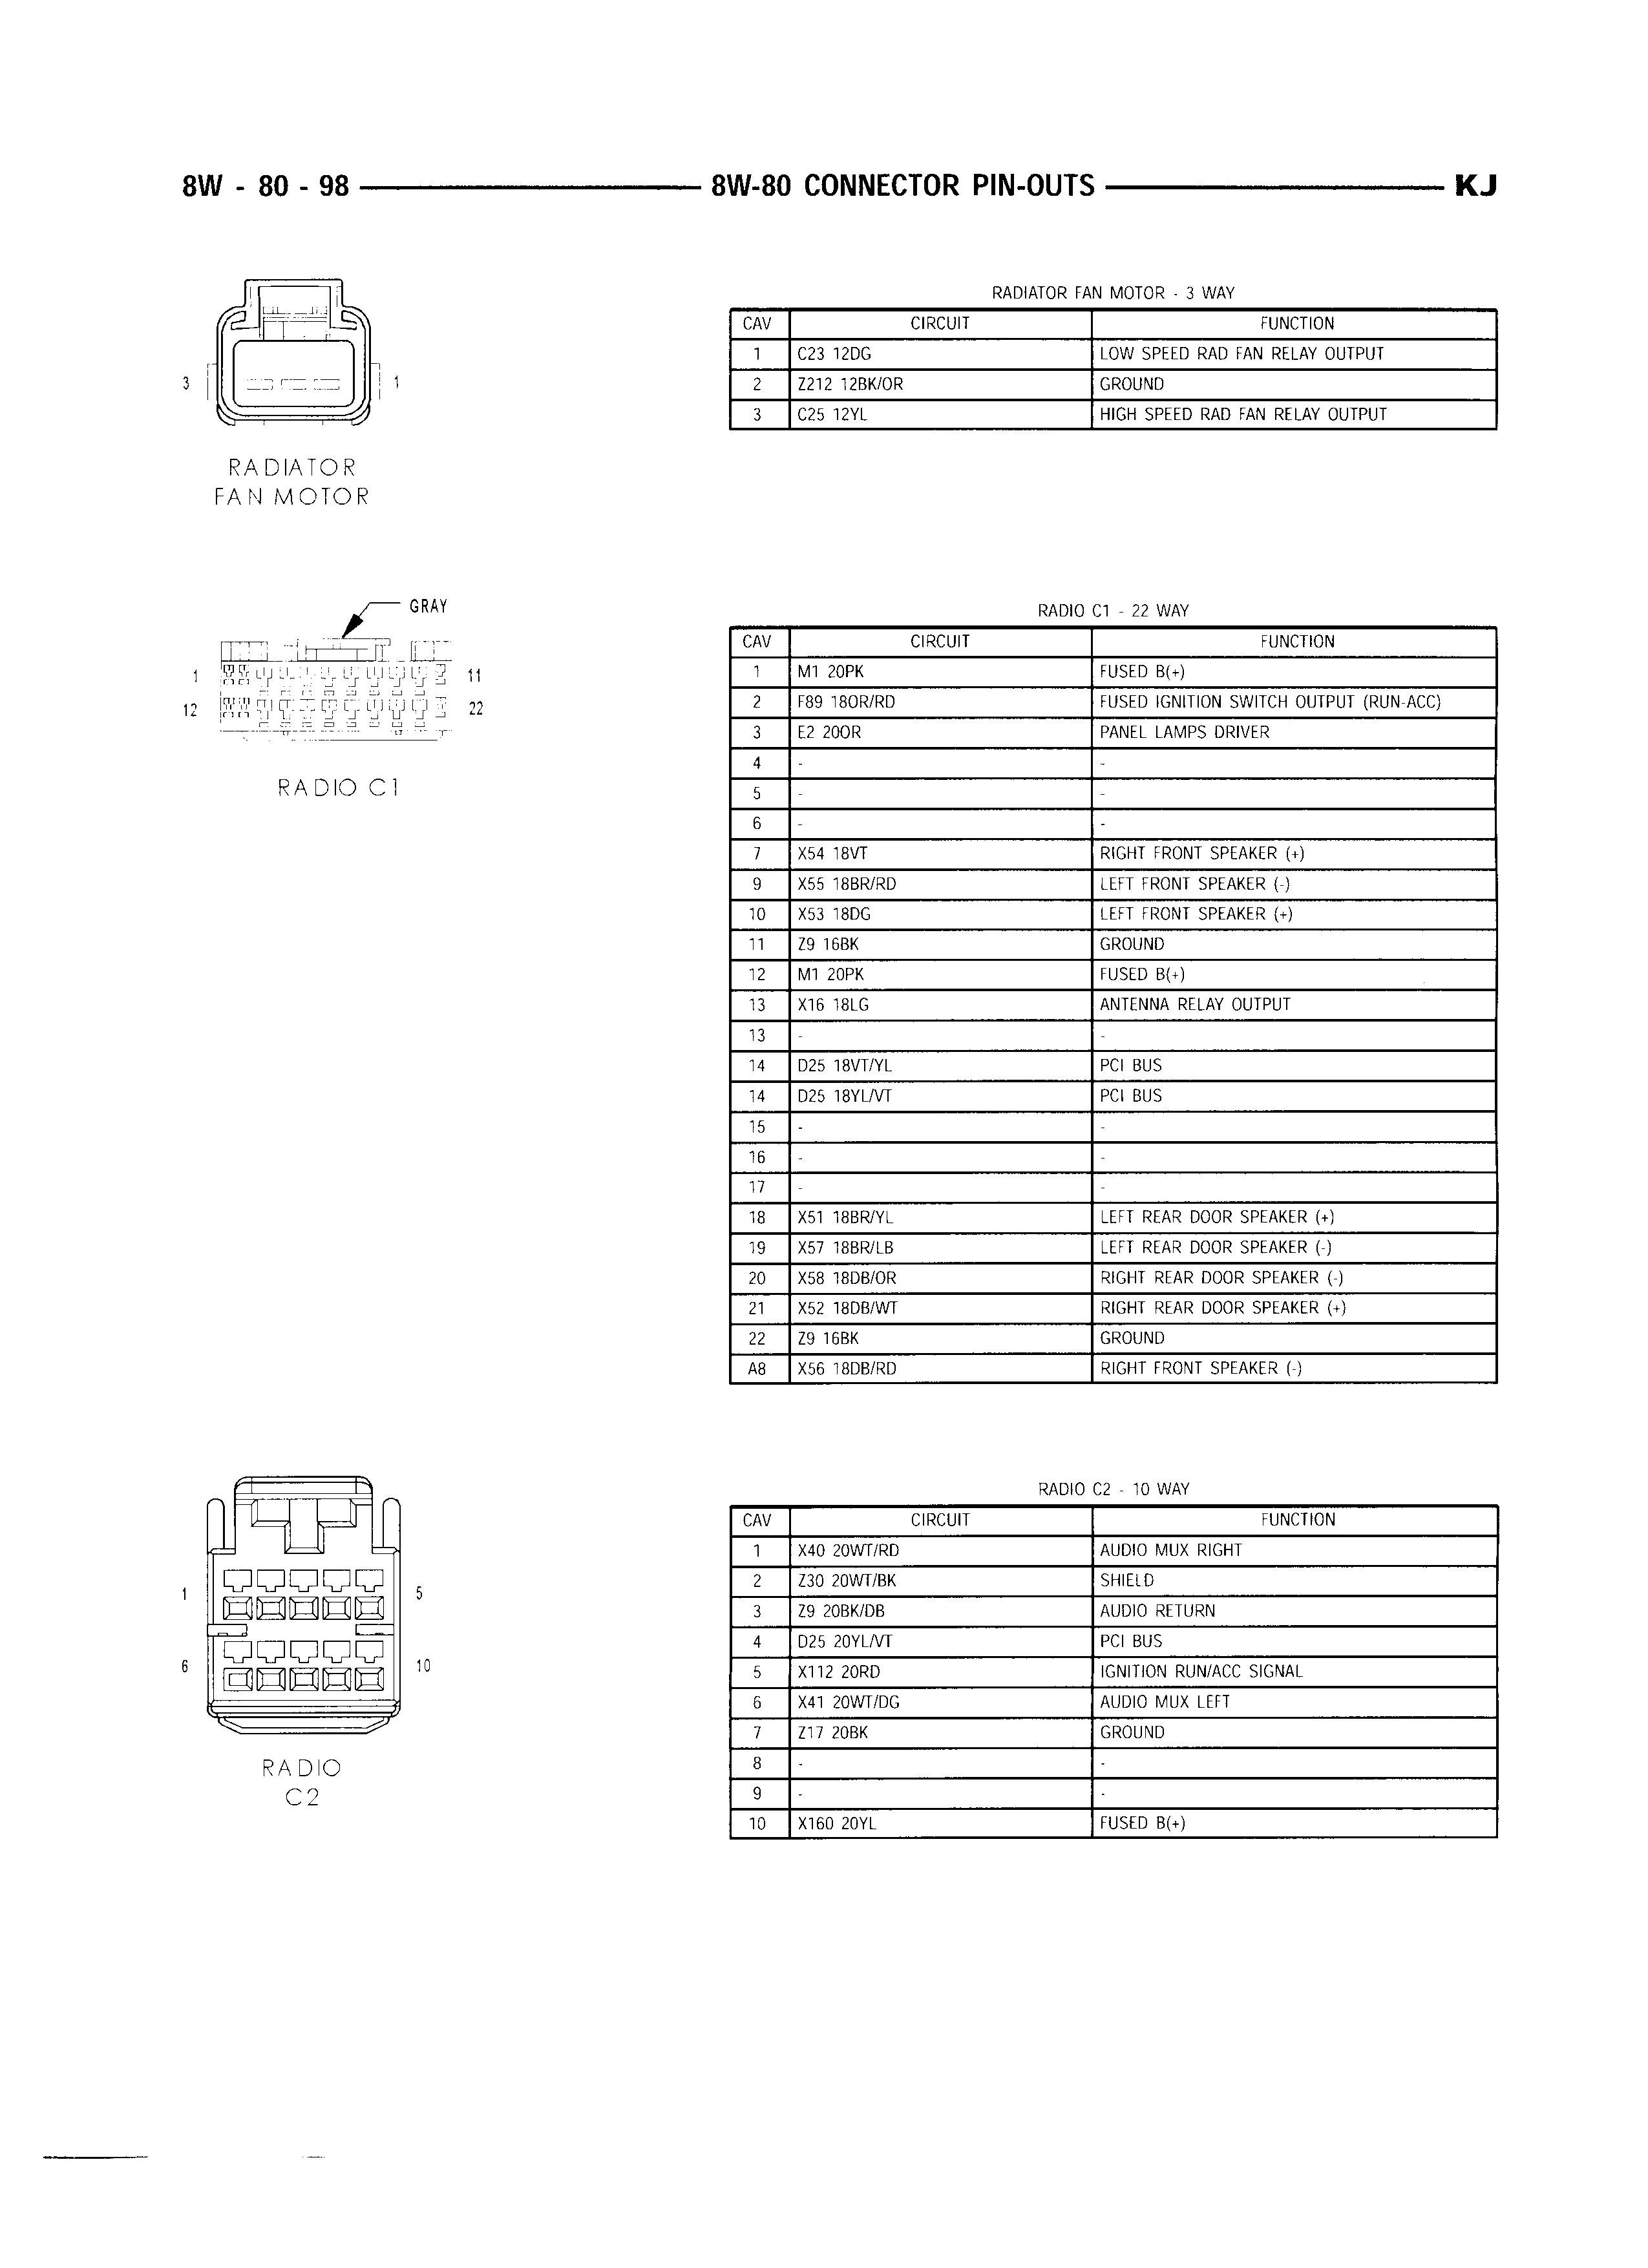 2005 jeep liberty crd wiring diagram for half switched outlet 2003 engine  free